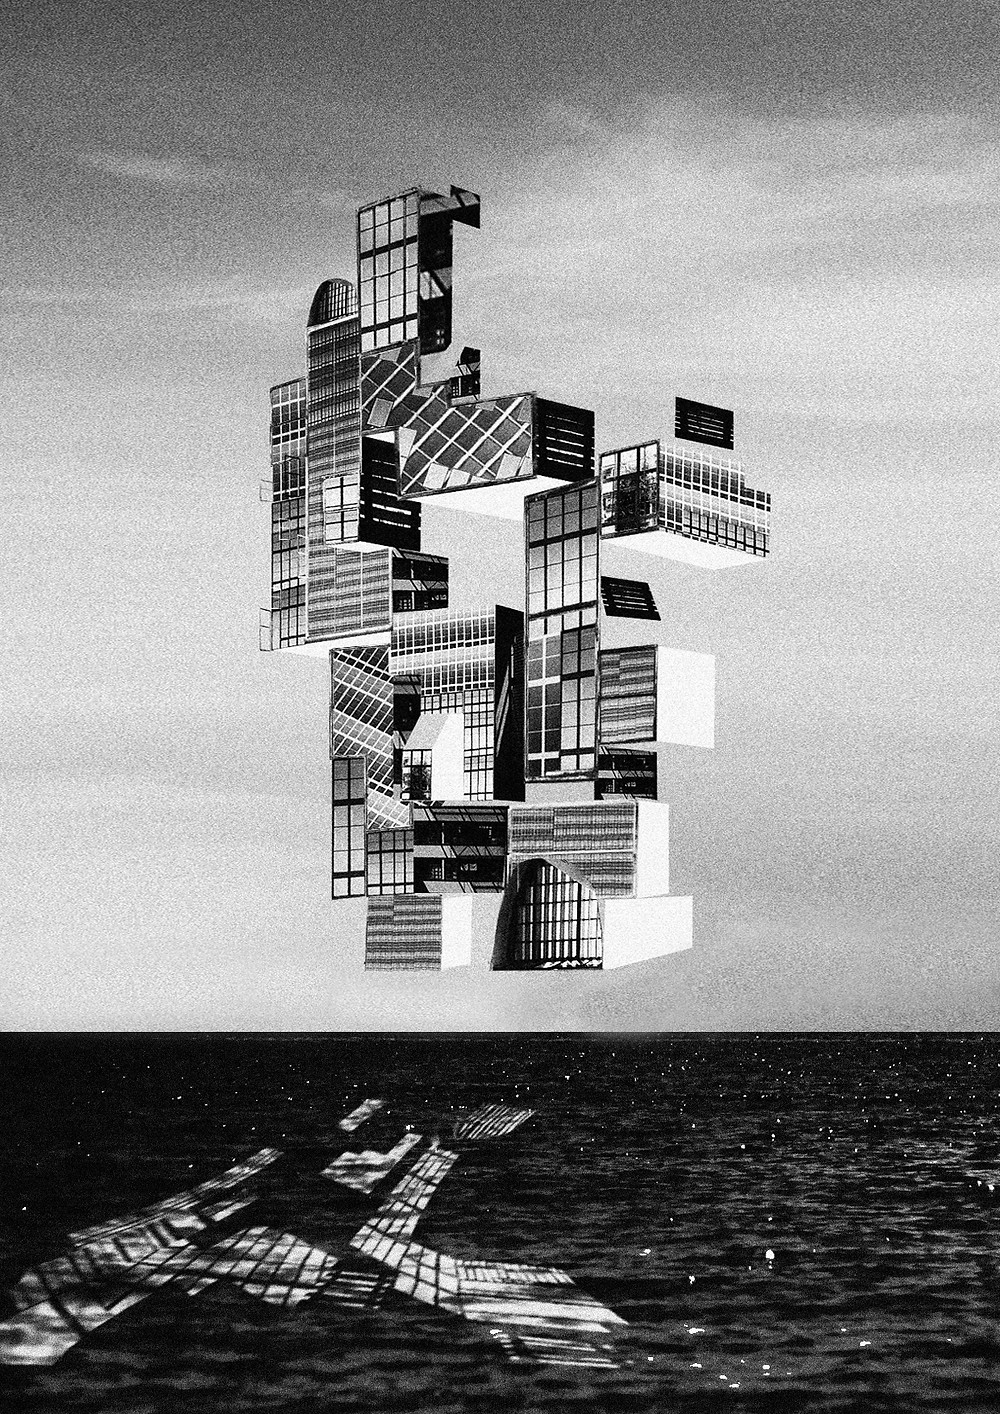 'A Floating Home'. 594mm x 841mm. Print on paper.